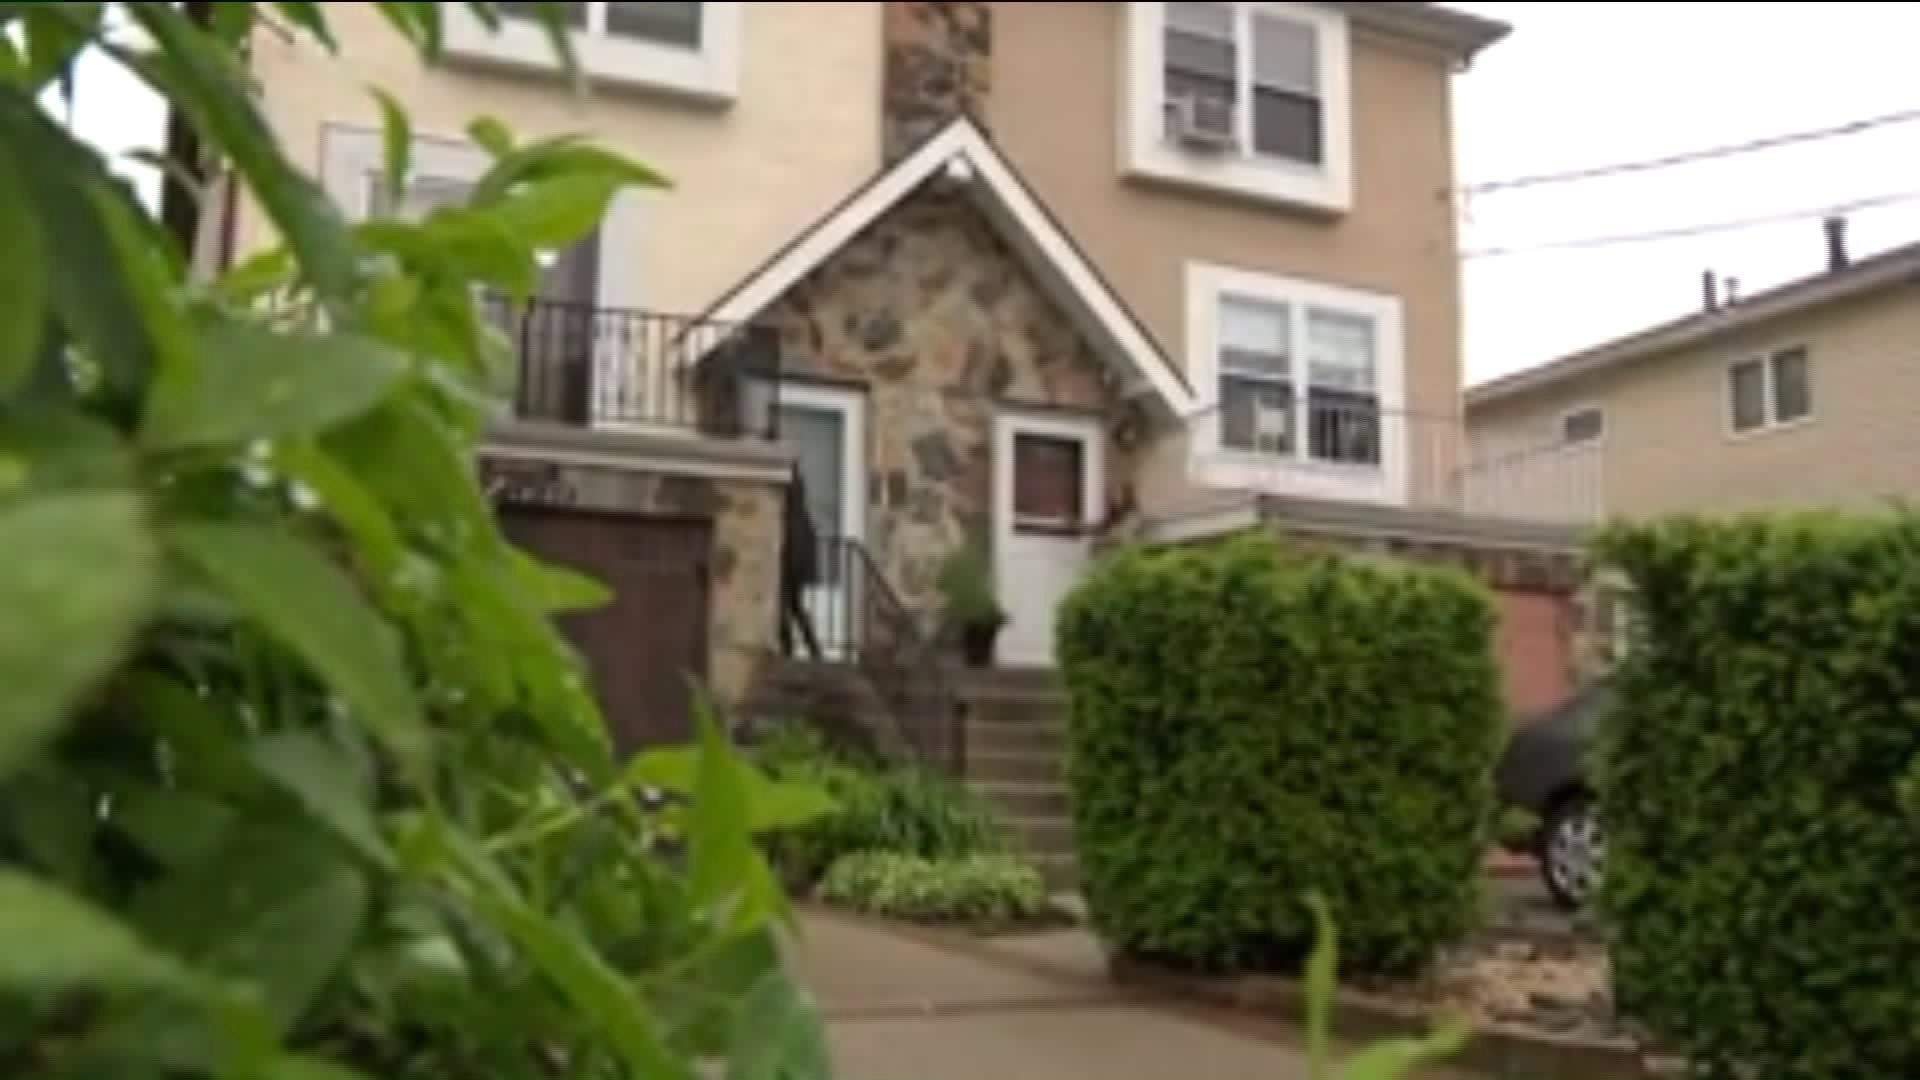 1-Year-Old Critically Injured After Possibly Overdosing on Methadone: Police